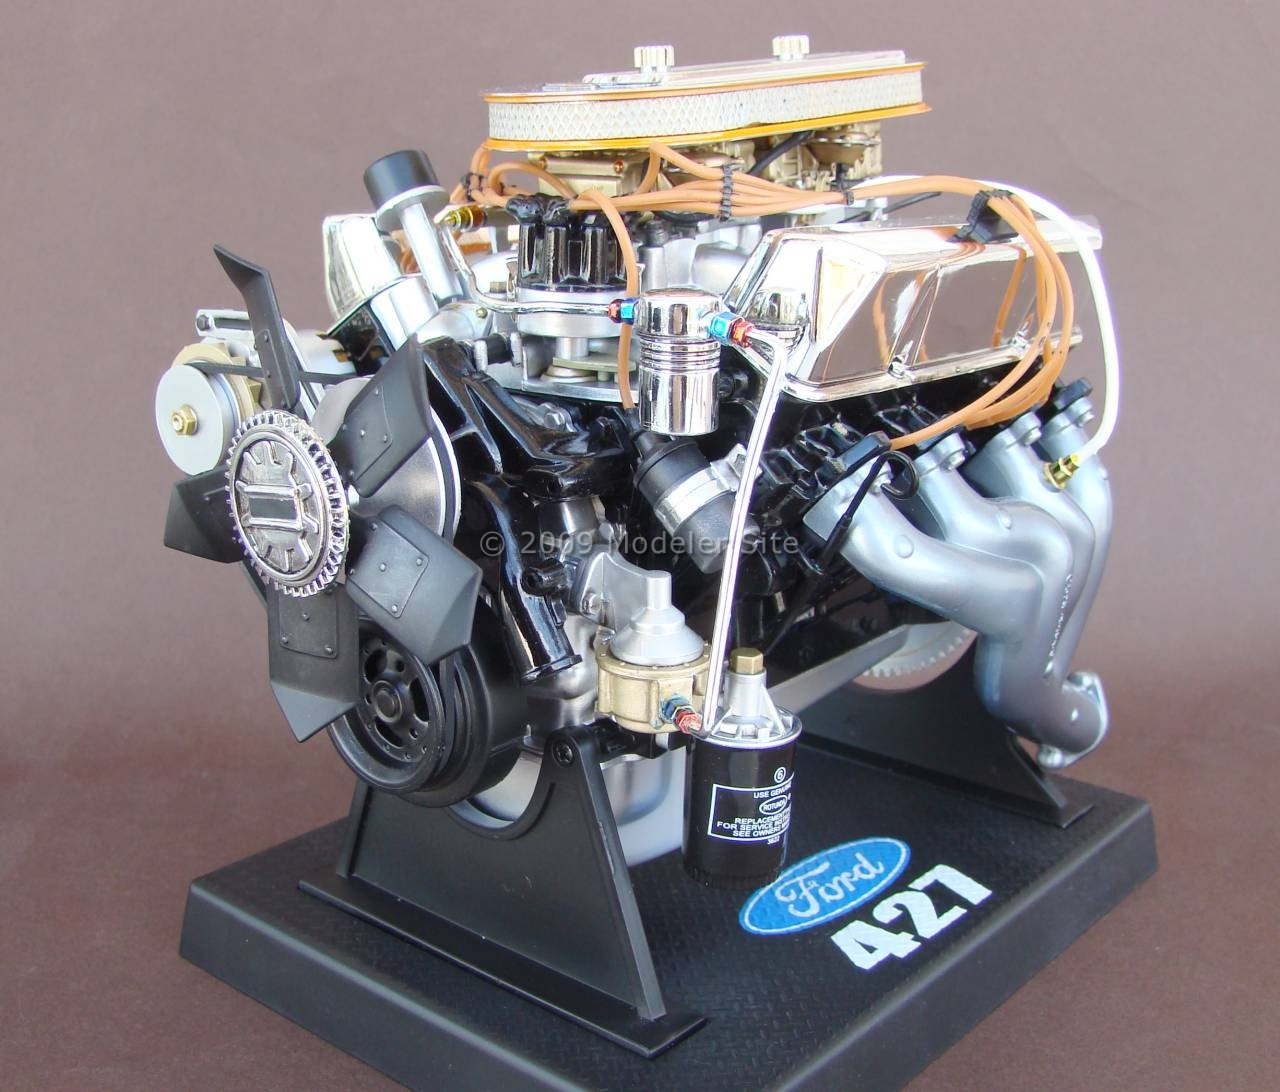 Revell Engines 1/6 Scale